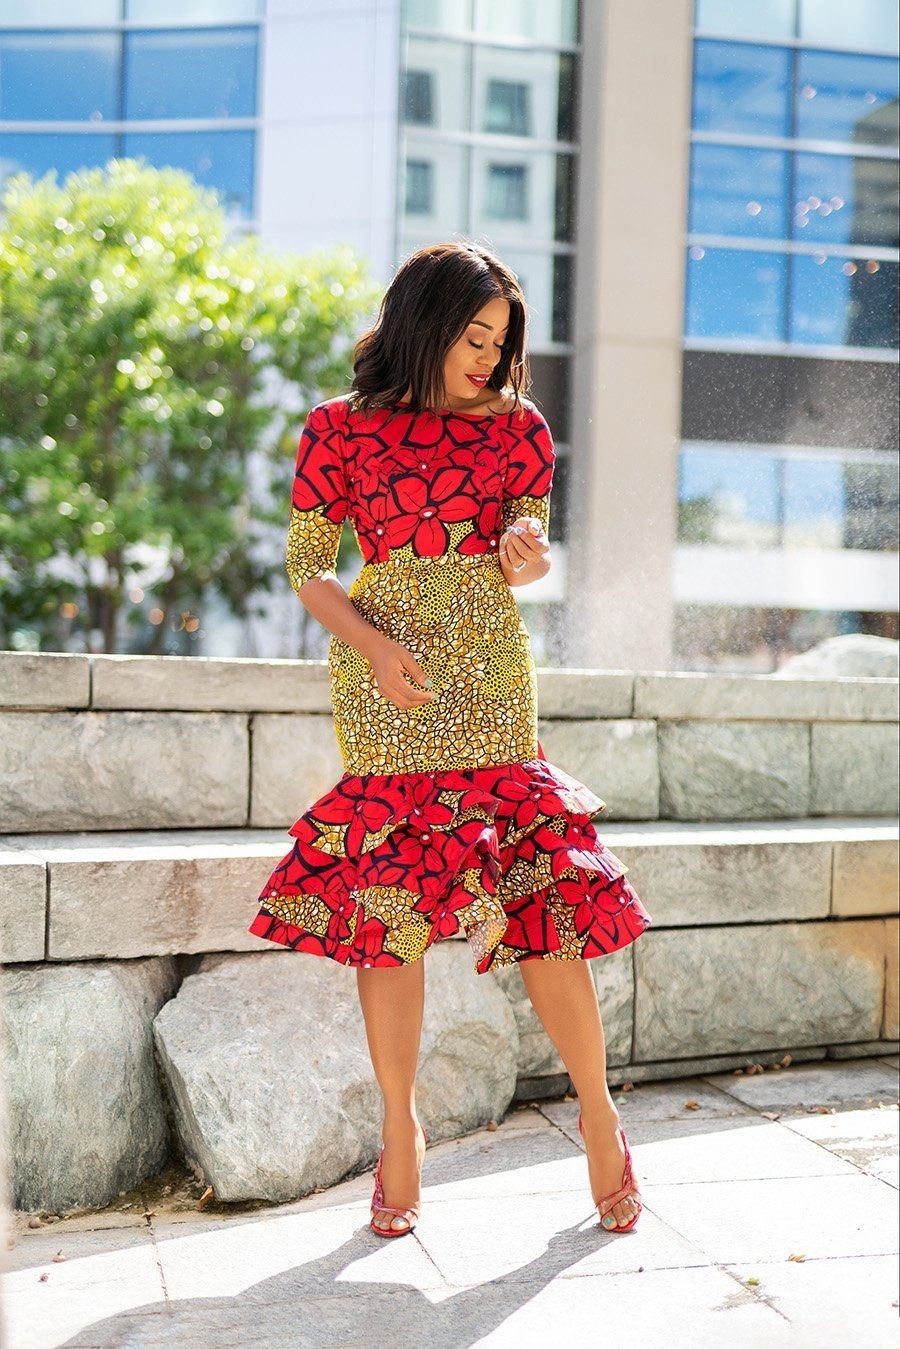 Stella-Adewunmi-of-Jadore-Fashion-shares-what-to-wear-this-holiday-and-beyond-ankara-dress